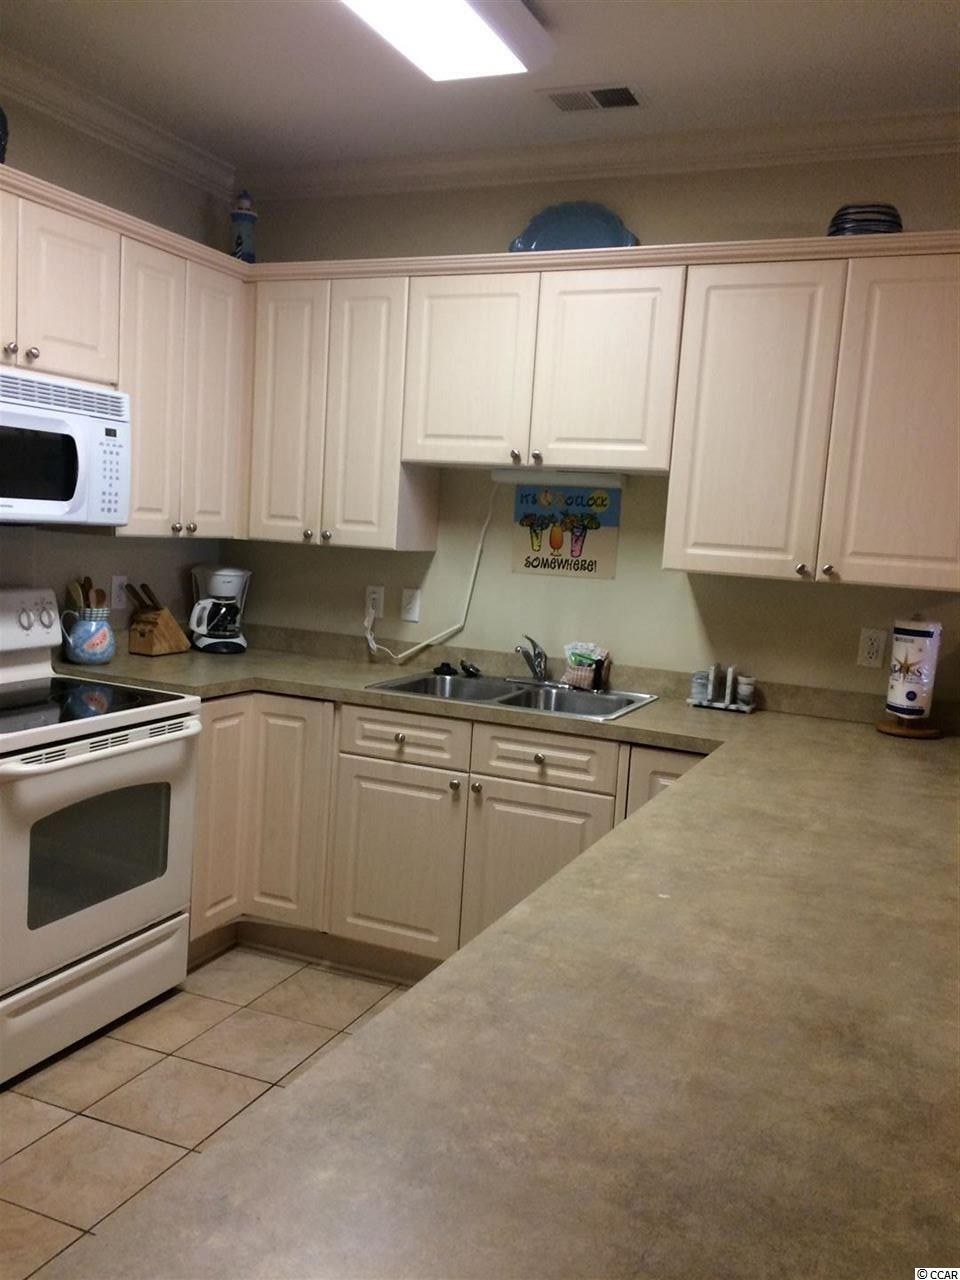 Contact your Realtor for this 3 bedroom condo for sale at  Magnolia Pointe Bldg 48